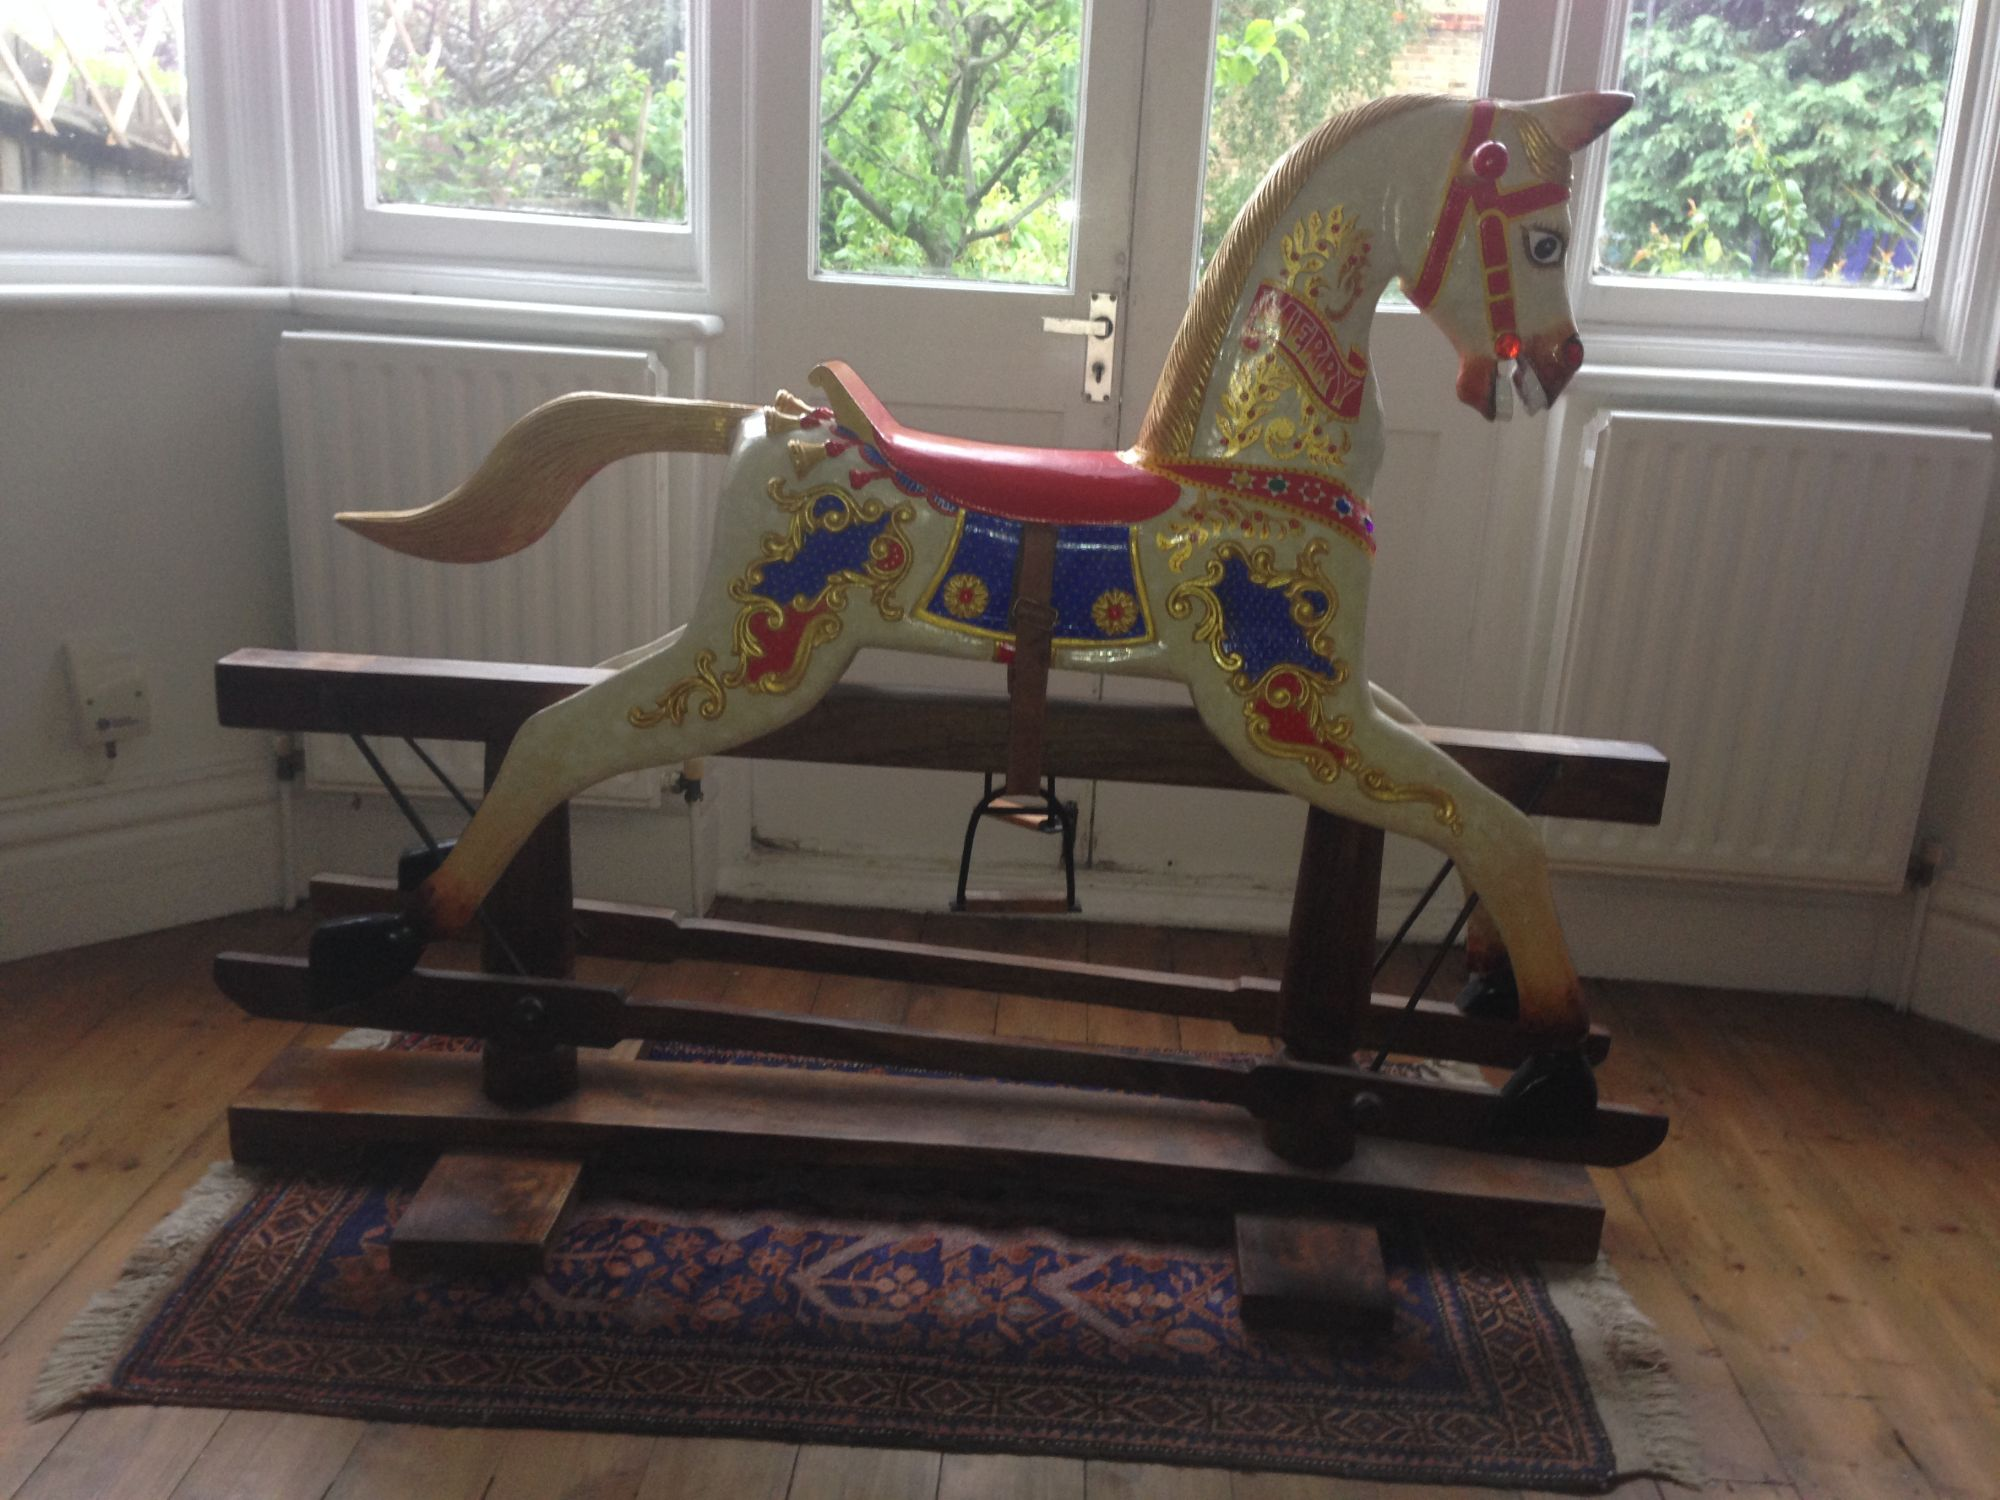 For Sale - Carousel type rocking horse